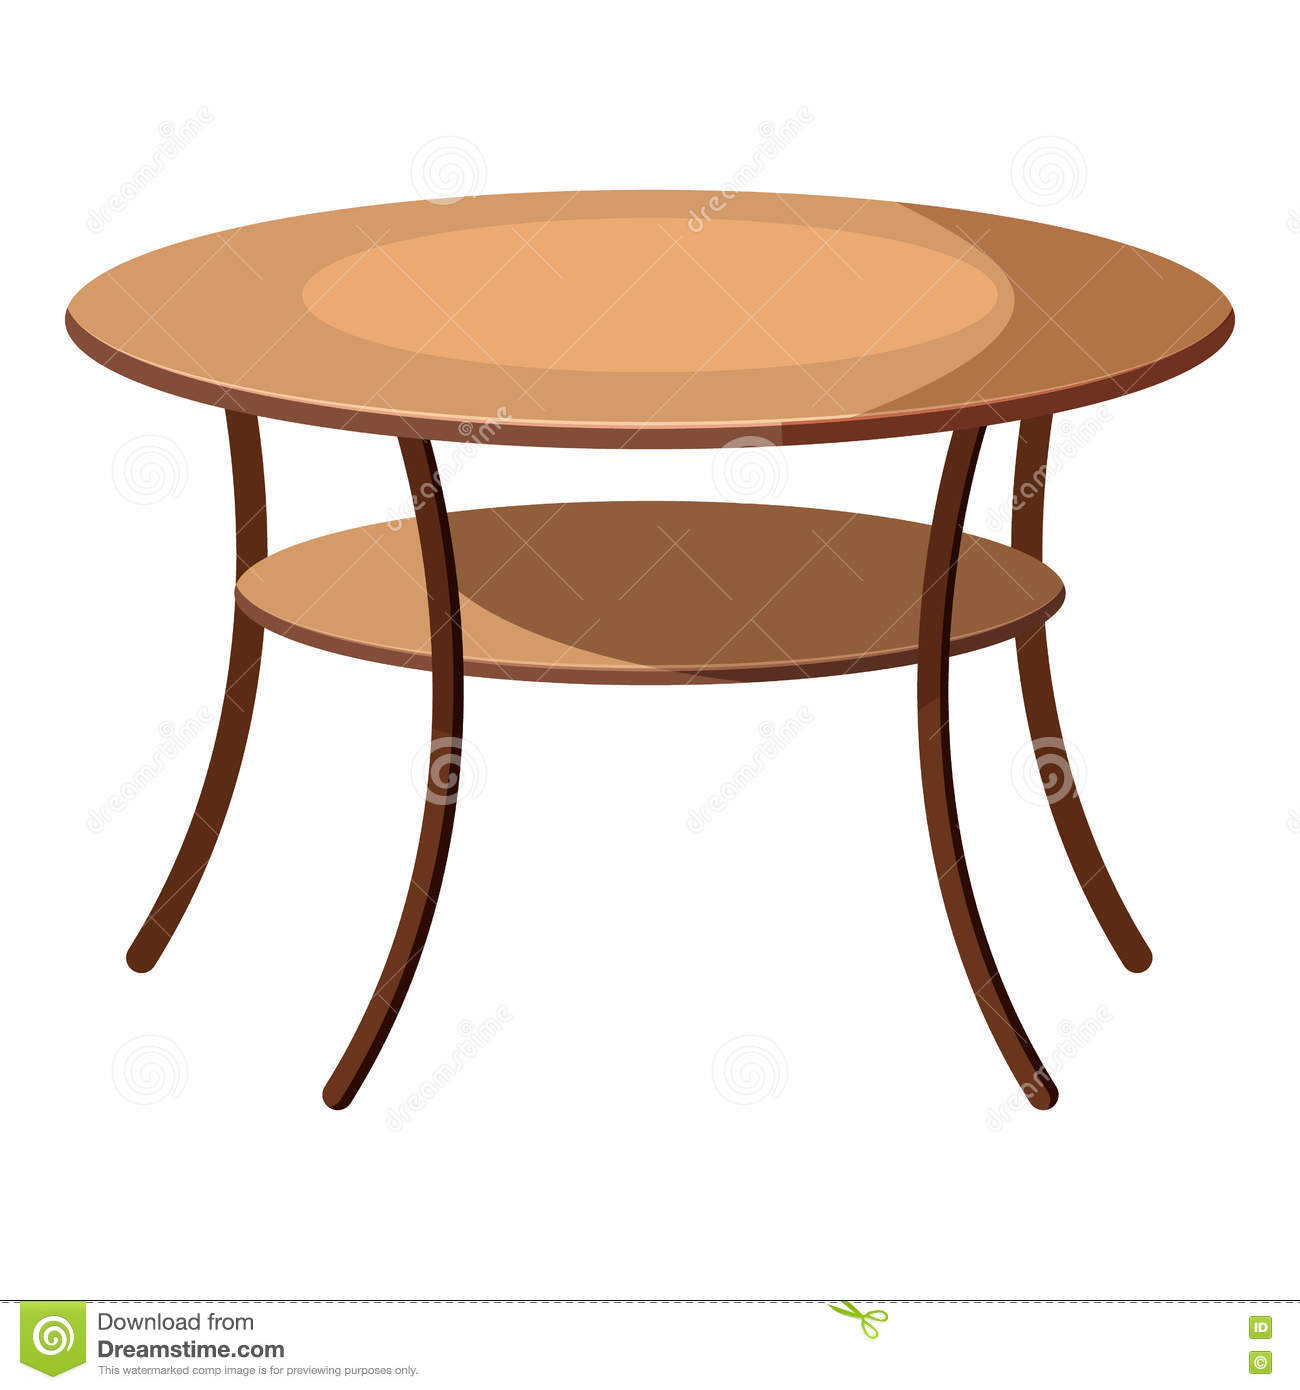 Wooden Round Table Isolated Illustration Cartoon Vector